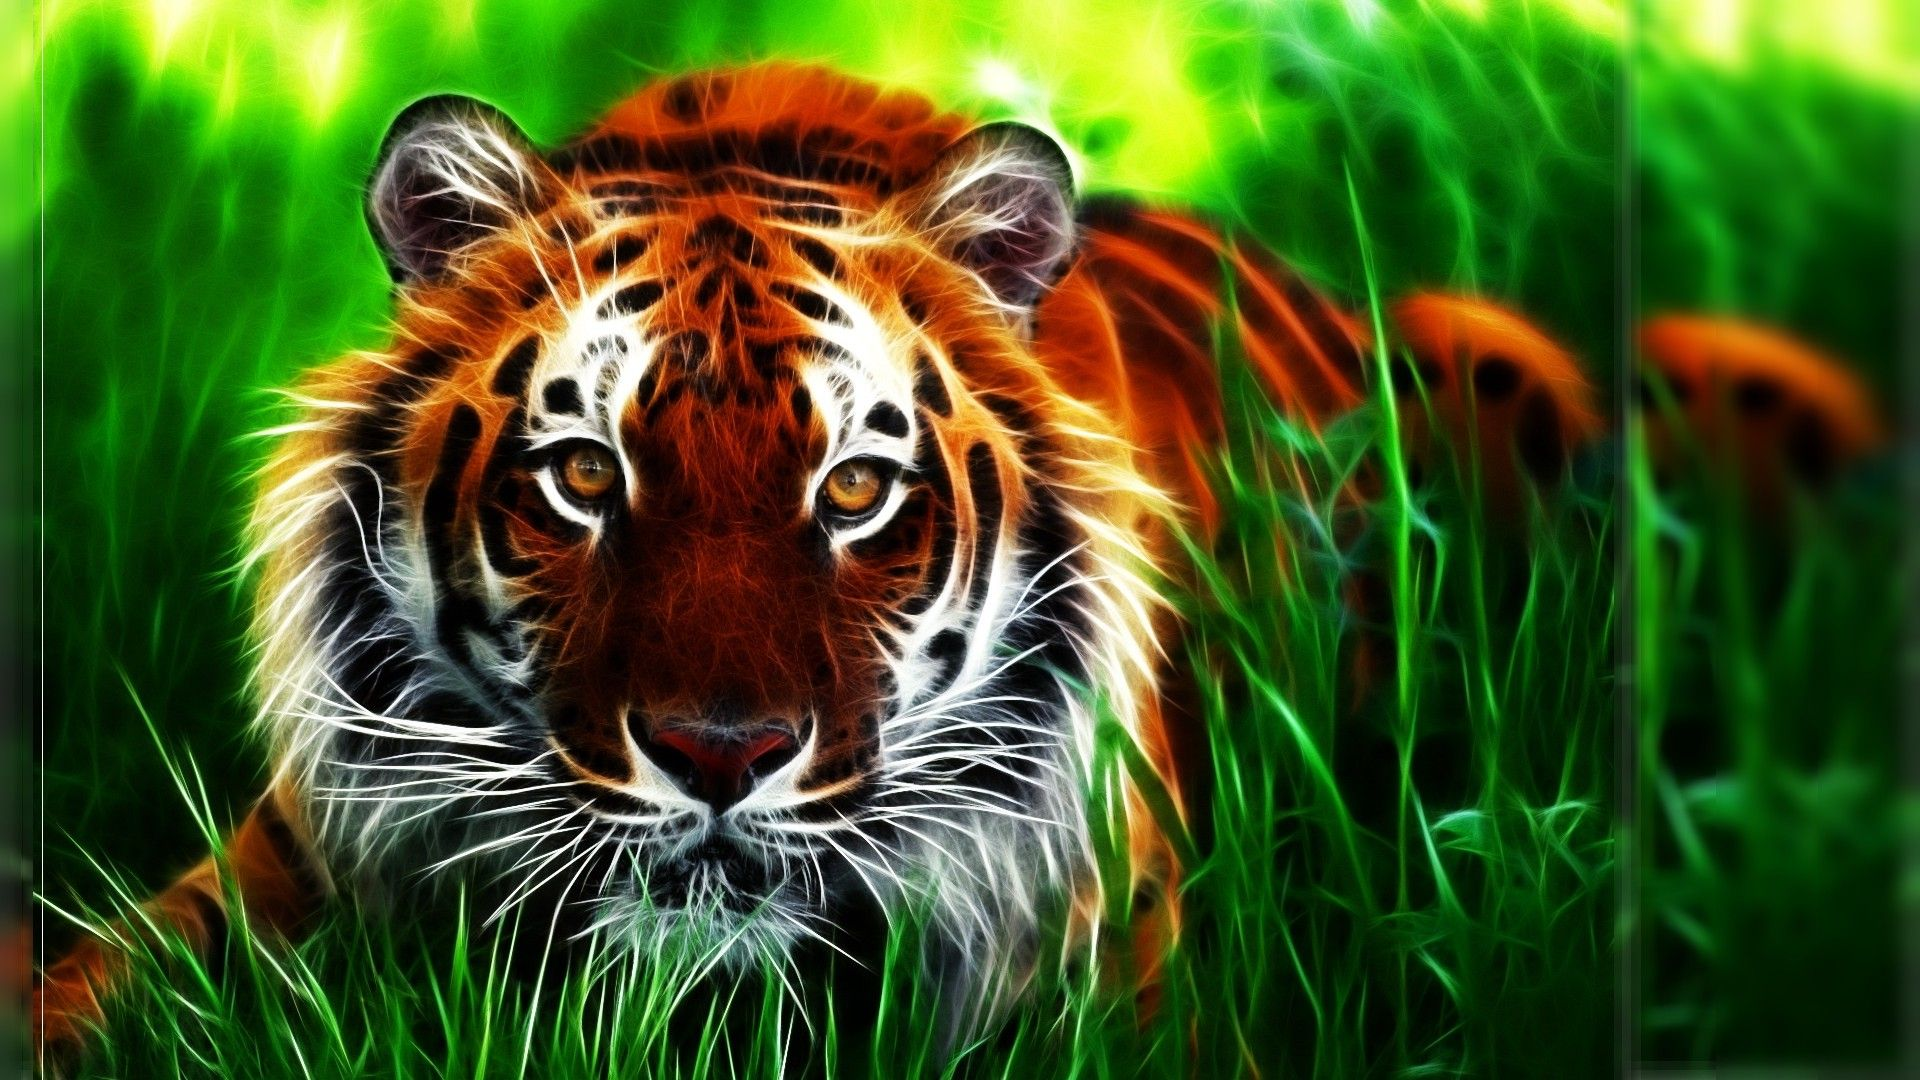 Popular Wallpaper High Quality Tiger - ecd81b3e3394ebd684f88203a4ad7ba6  Image_964926.jpg